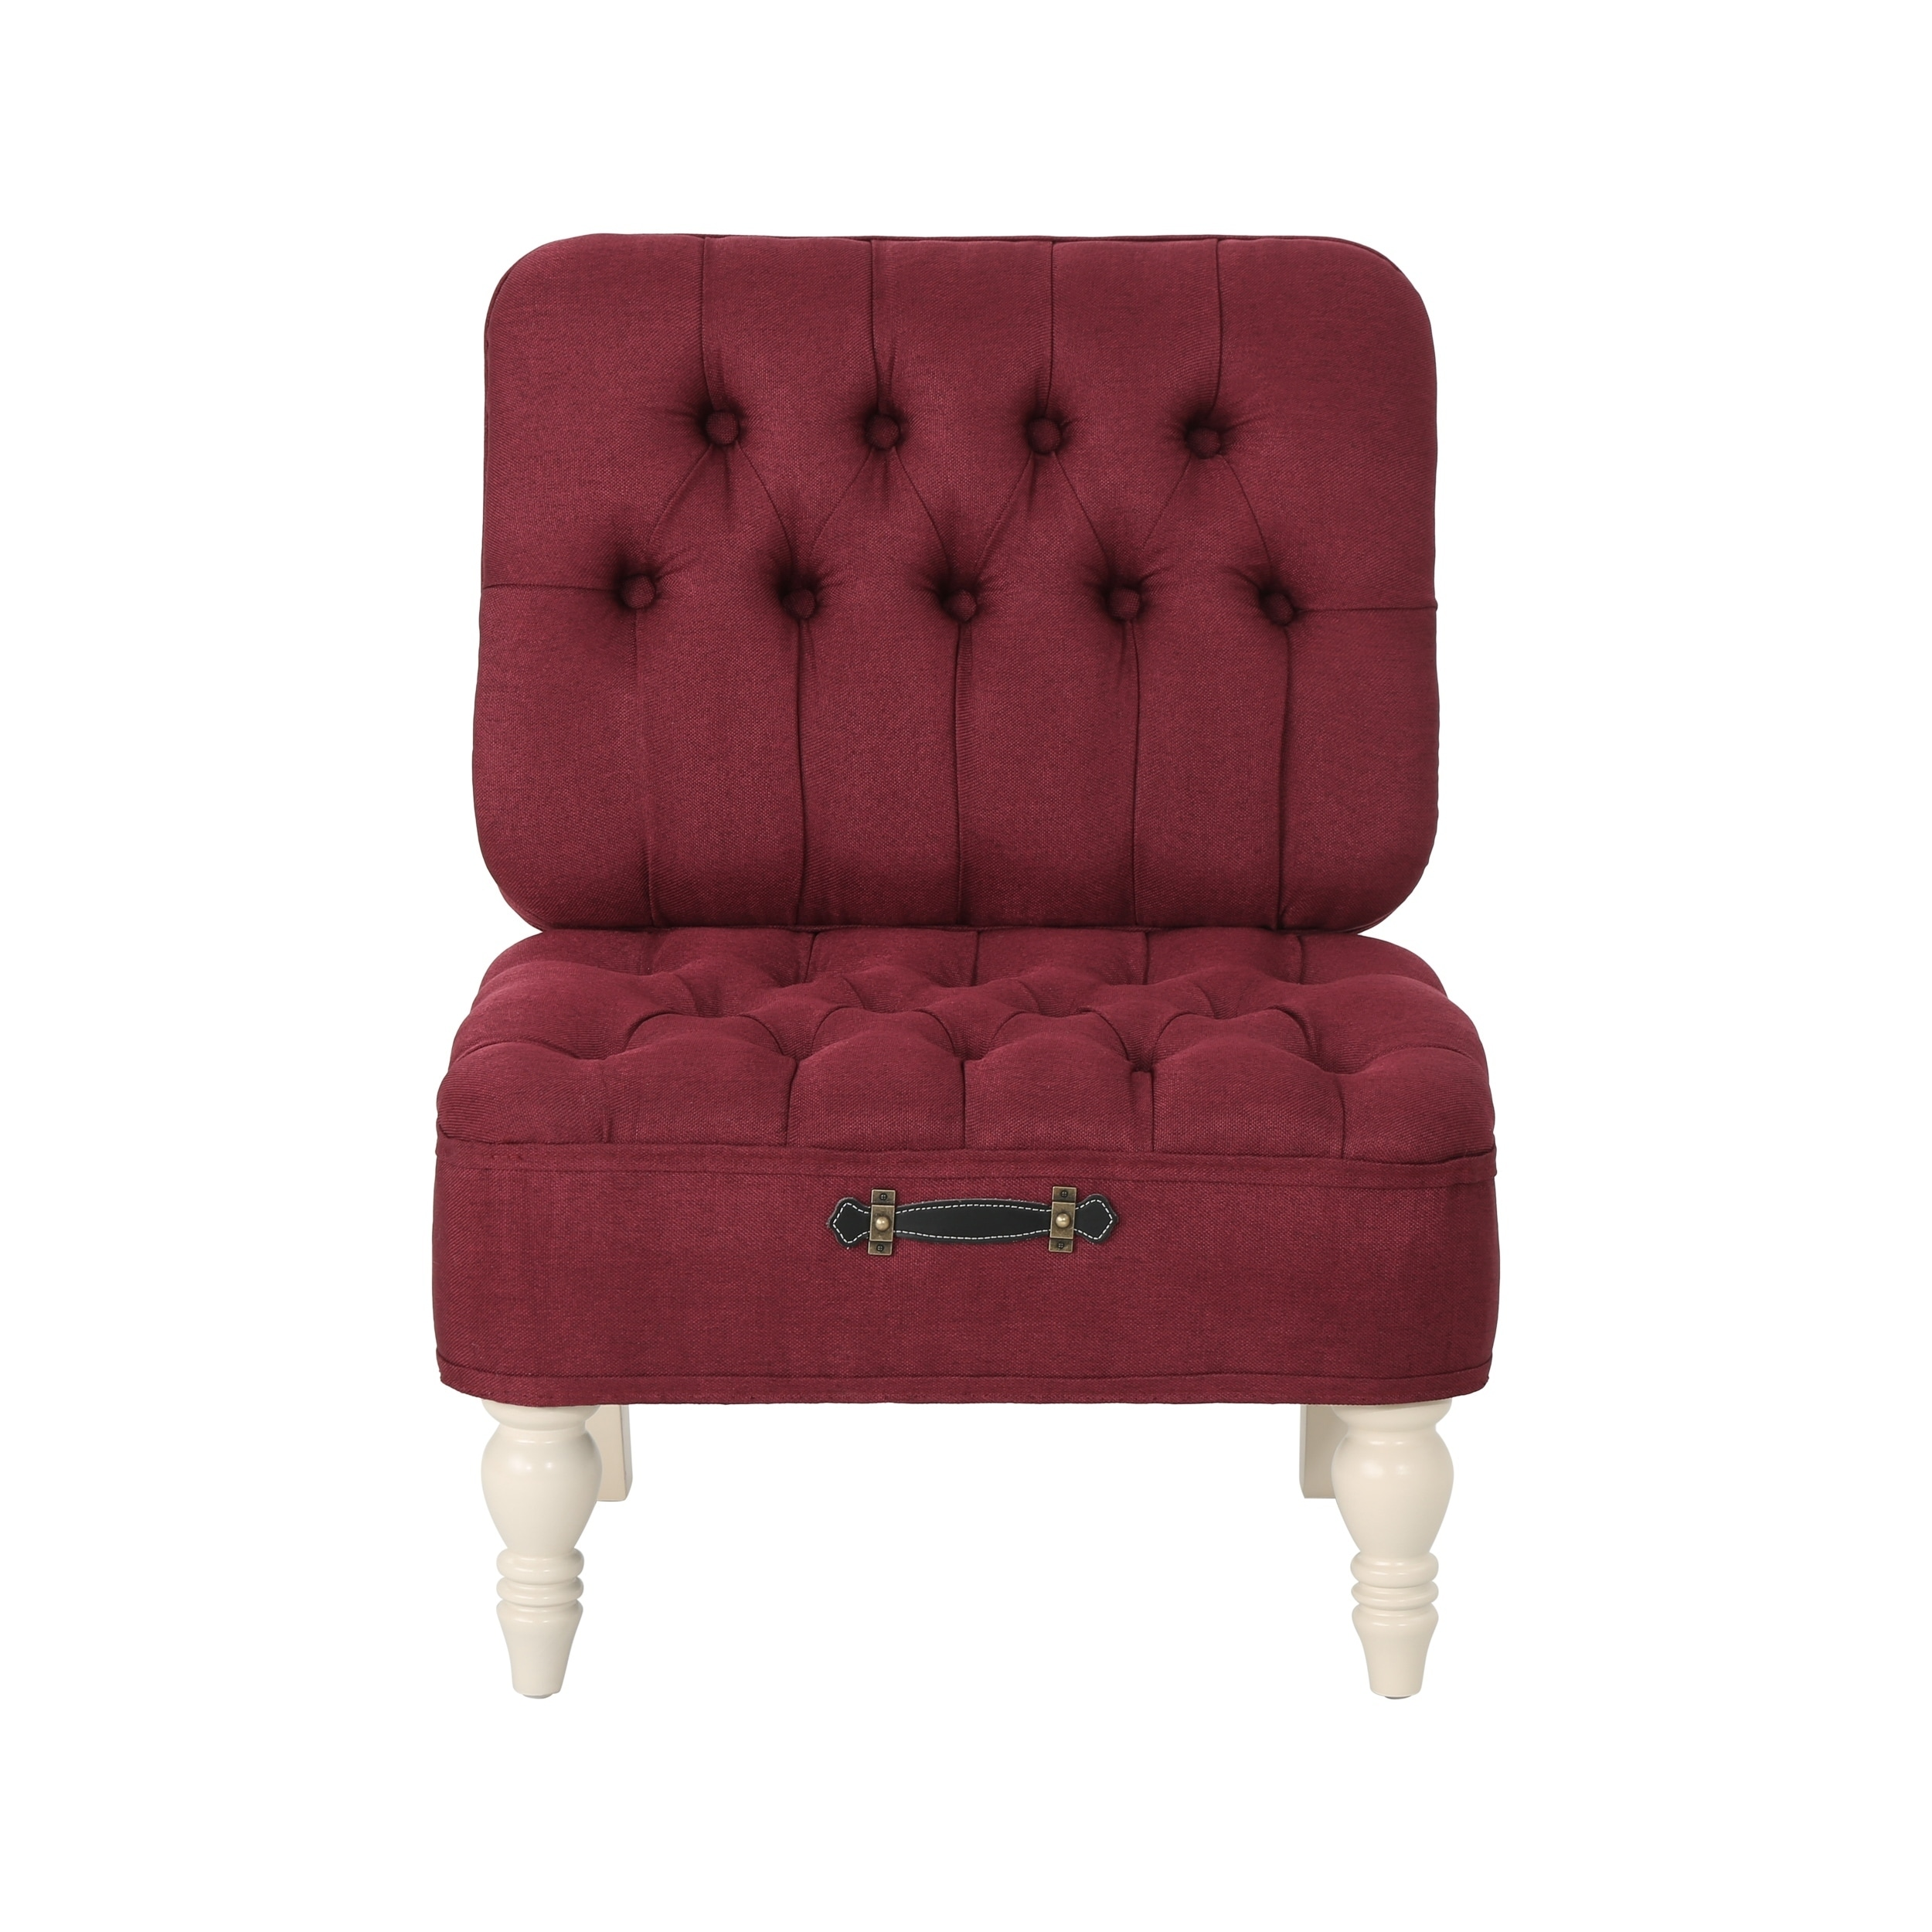 Kamela Upholstered Birch Vanity Chair By Christopher Knight Home   Free  Shipping Today   Overstock   28158719